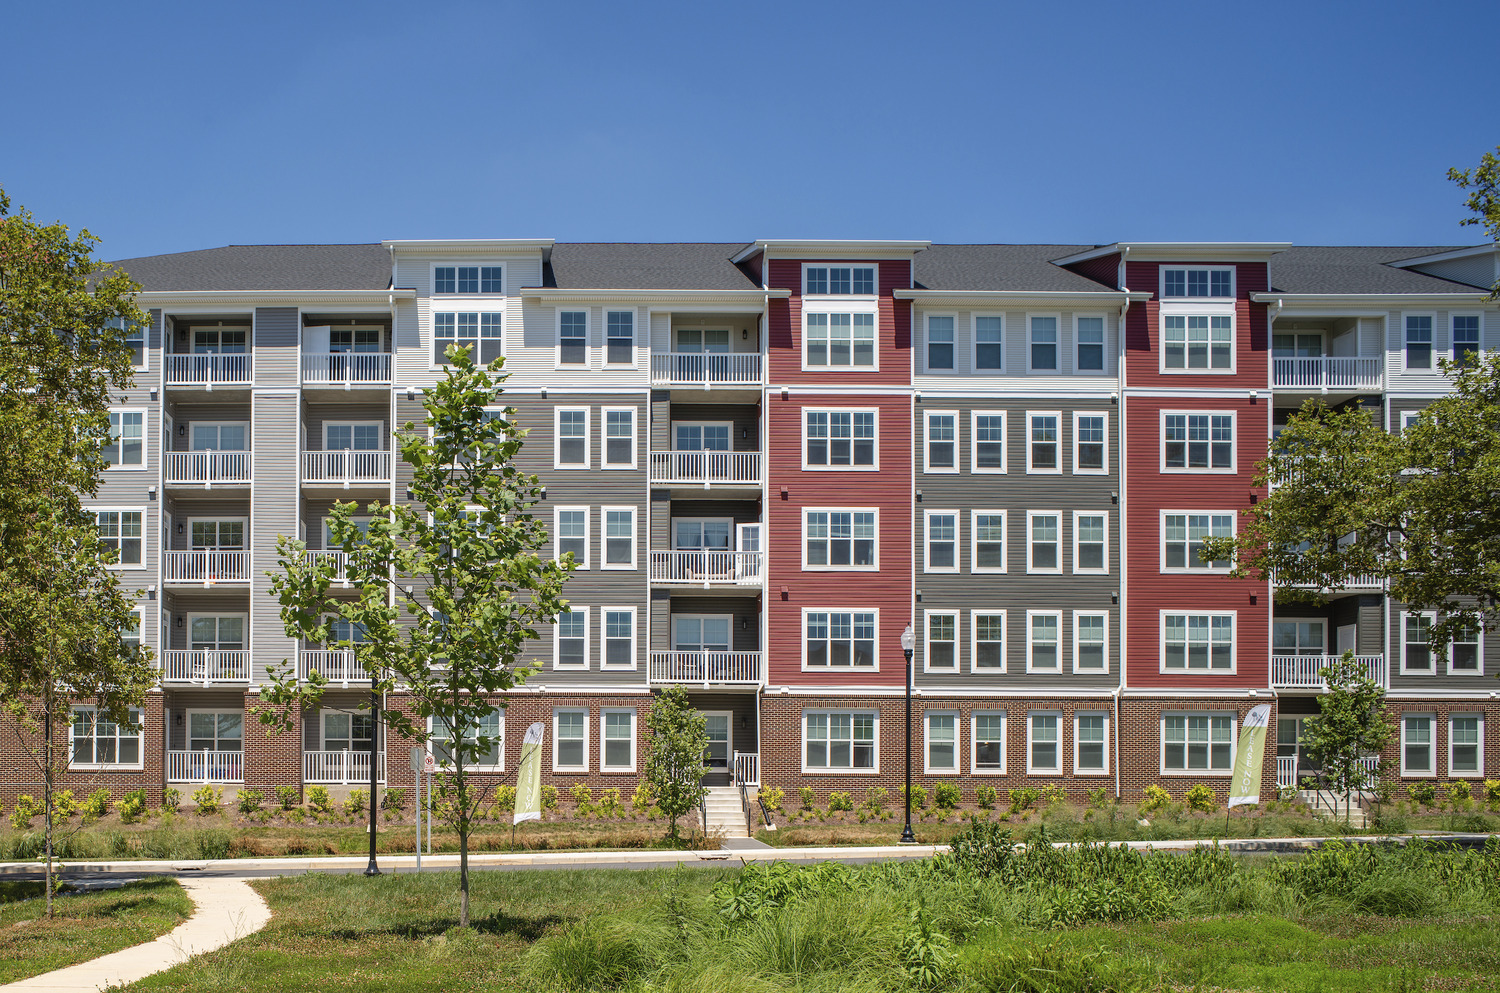 CBG builds The Elms at Century, a 300-Unit Market-Rate Apartment Community with Amenities in Germantown, MD - Image #4